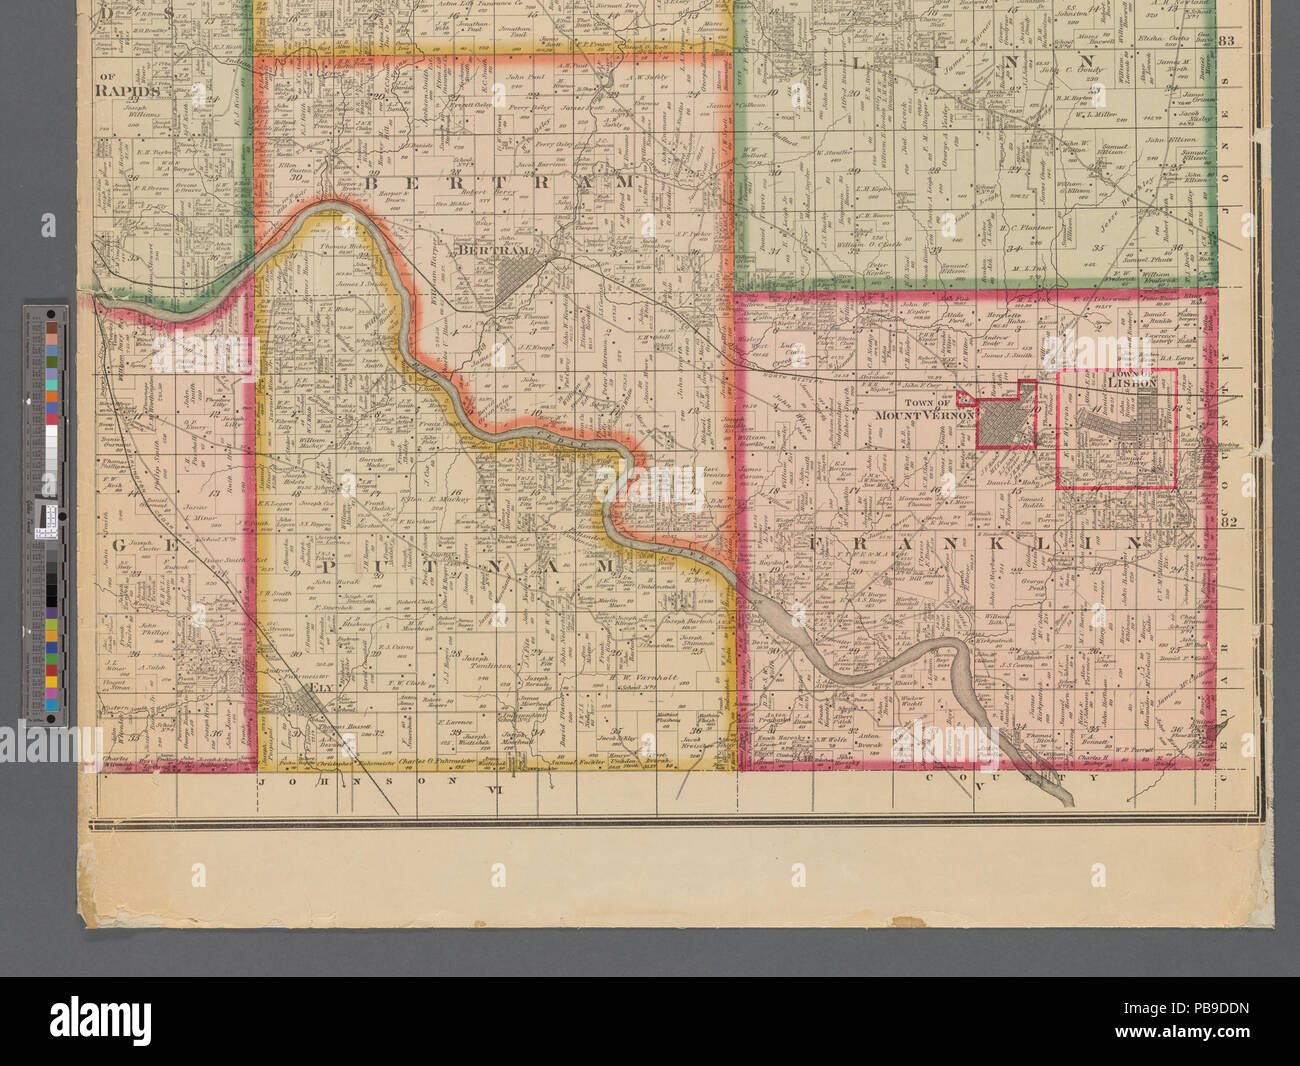 993 Map Of Linn County Iowa Nypl B11655881 5366938 Stock Photo